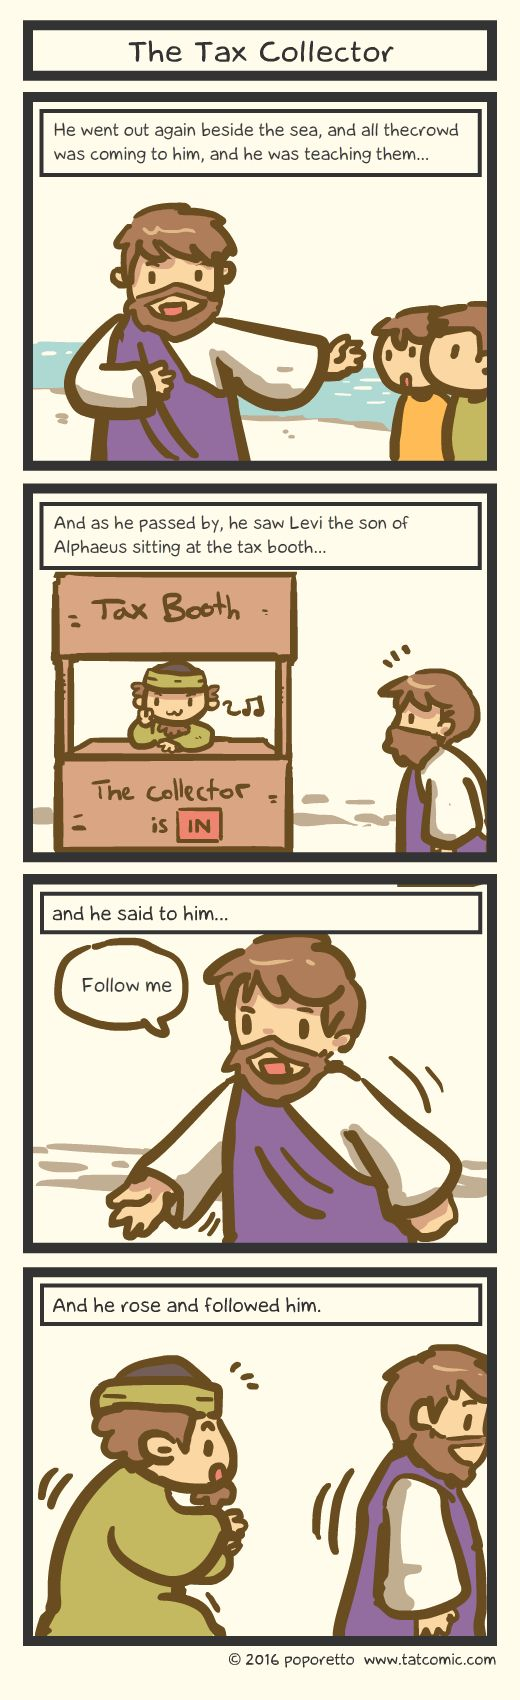 Book of mark comic gospel about how jesus and levi the tax collector